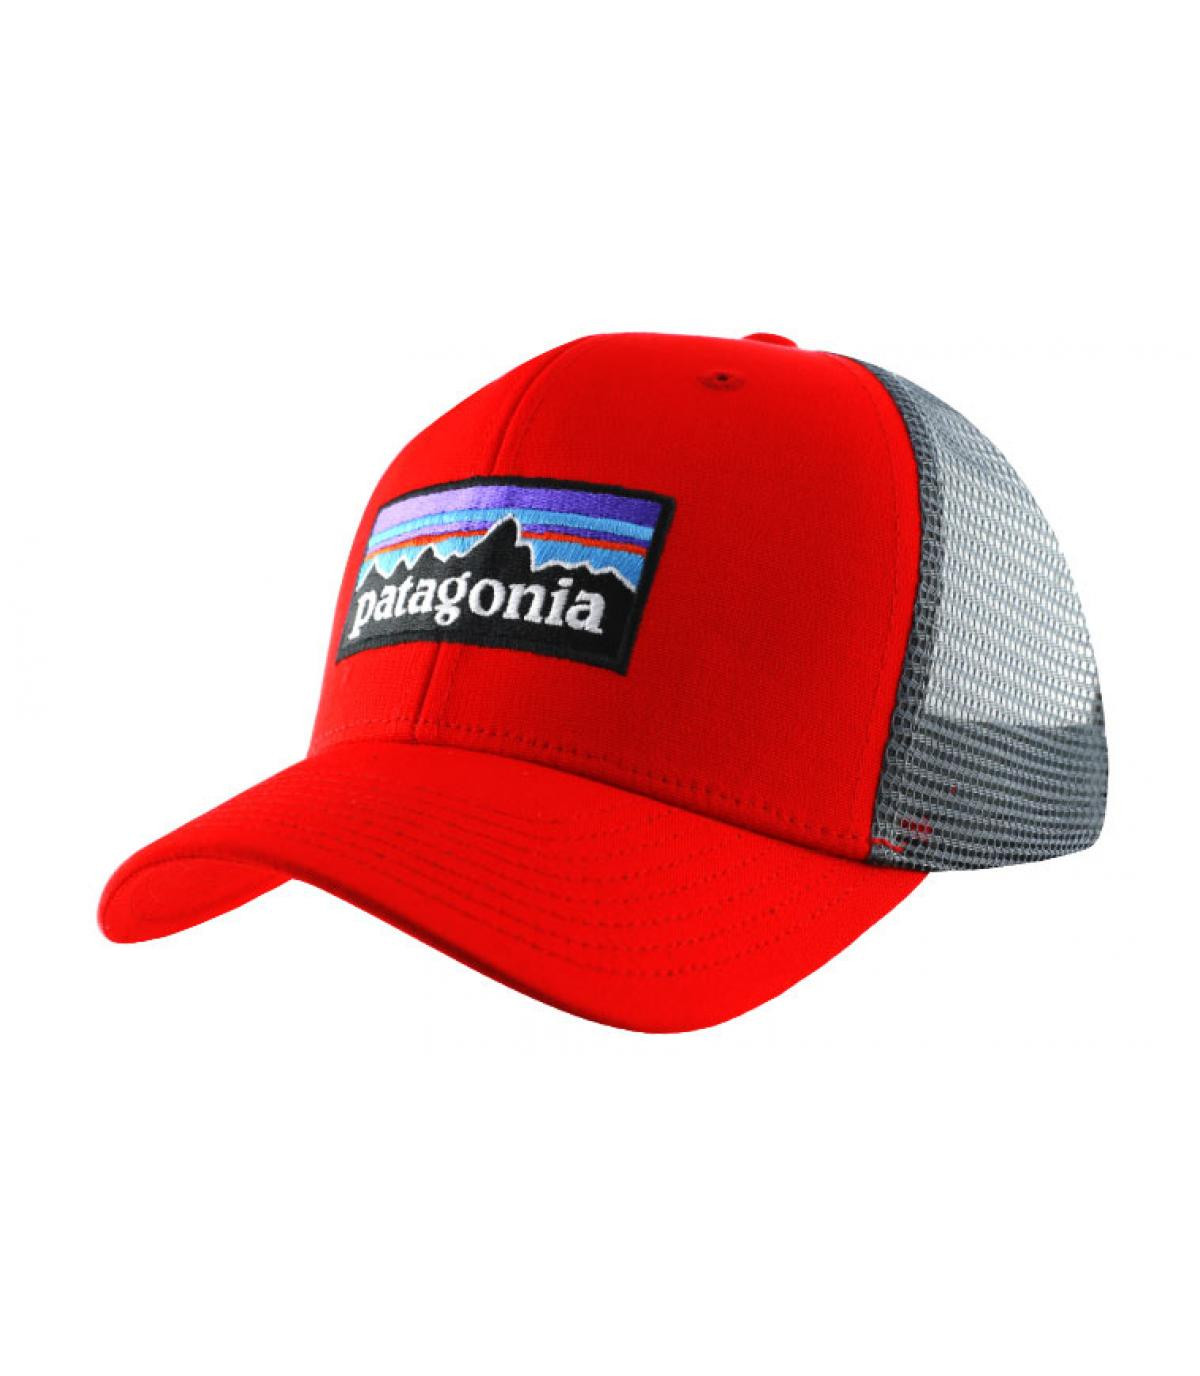 7f74fd9eee Red trucker cap - P6 logo trucker hat french red by Patagonia. Headict